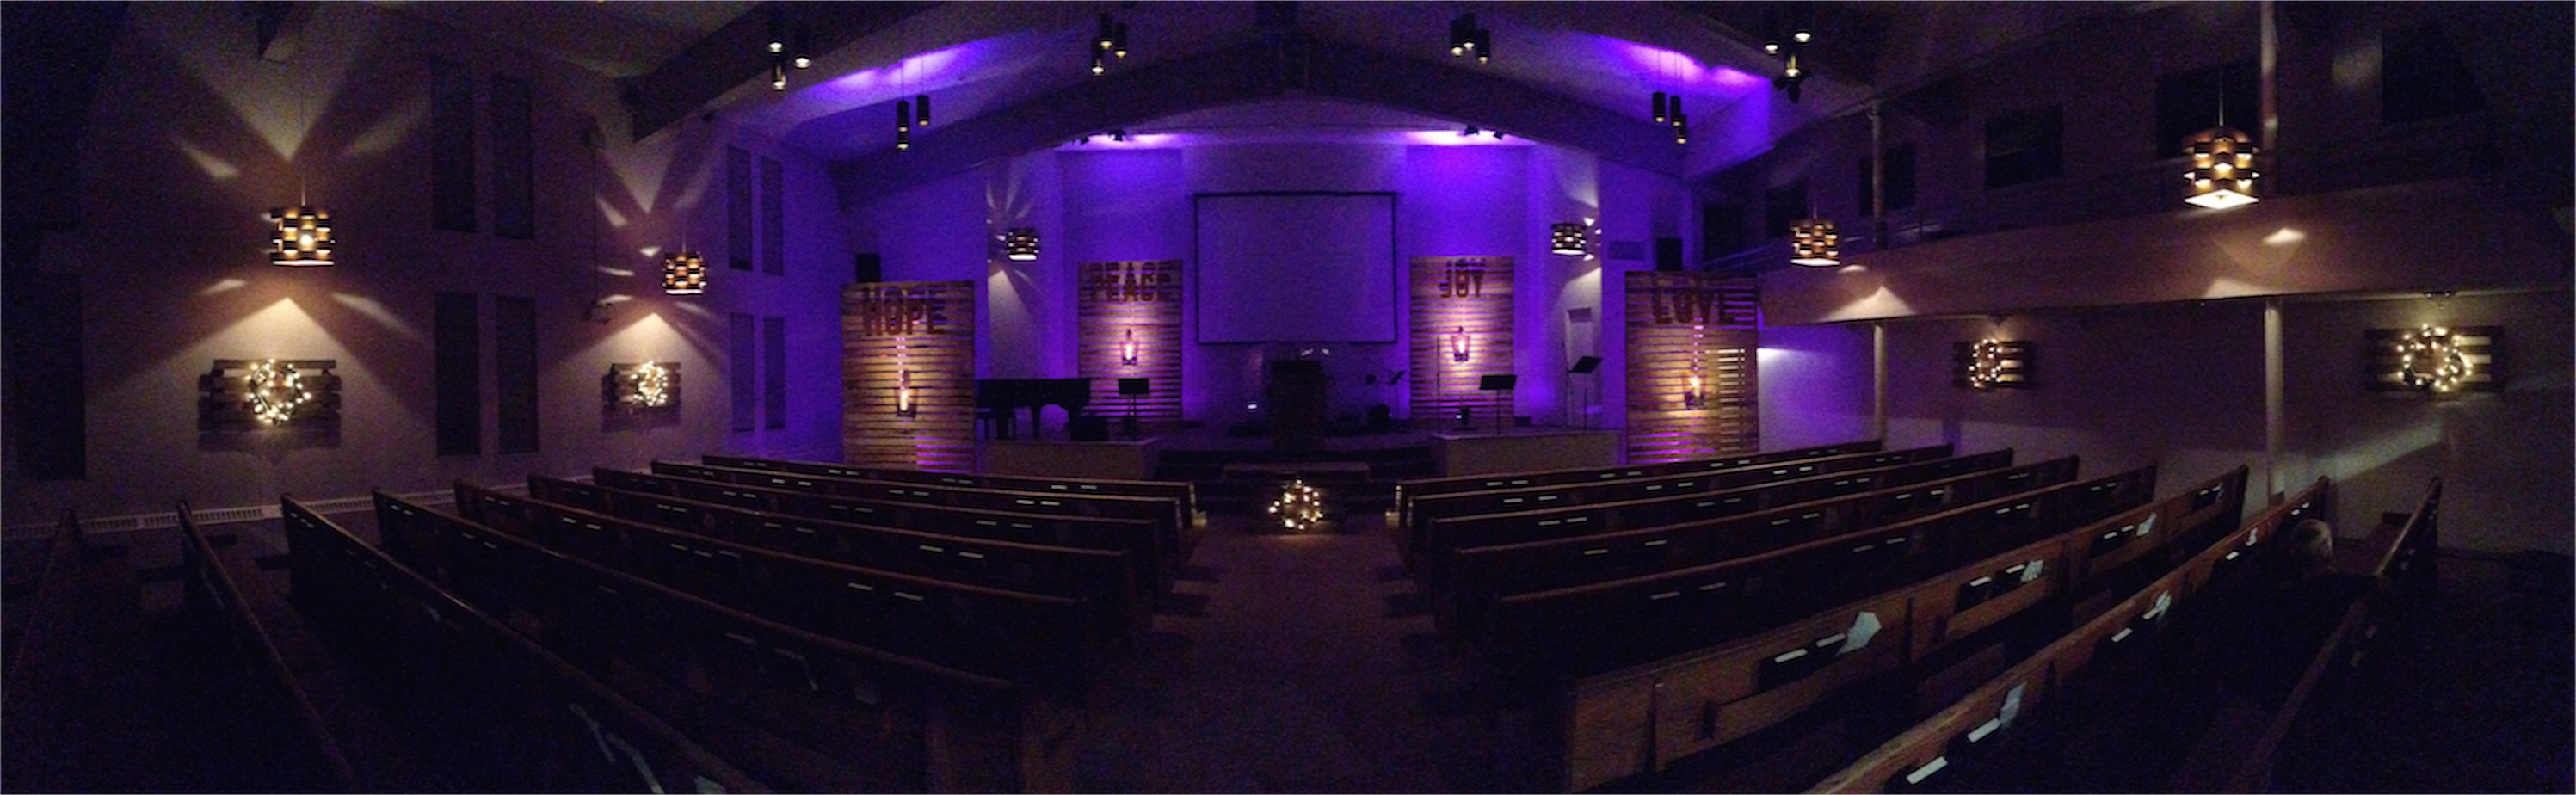 Clever Christmas Wreath Lamps Church Stage Design Ideas